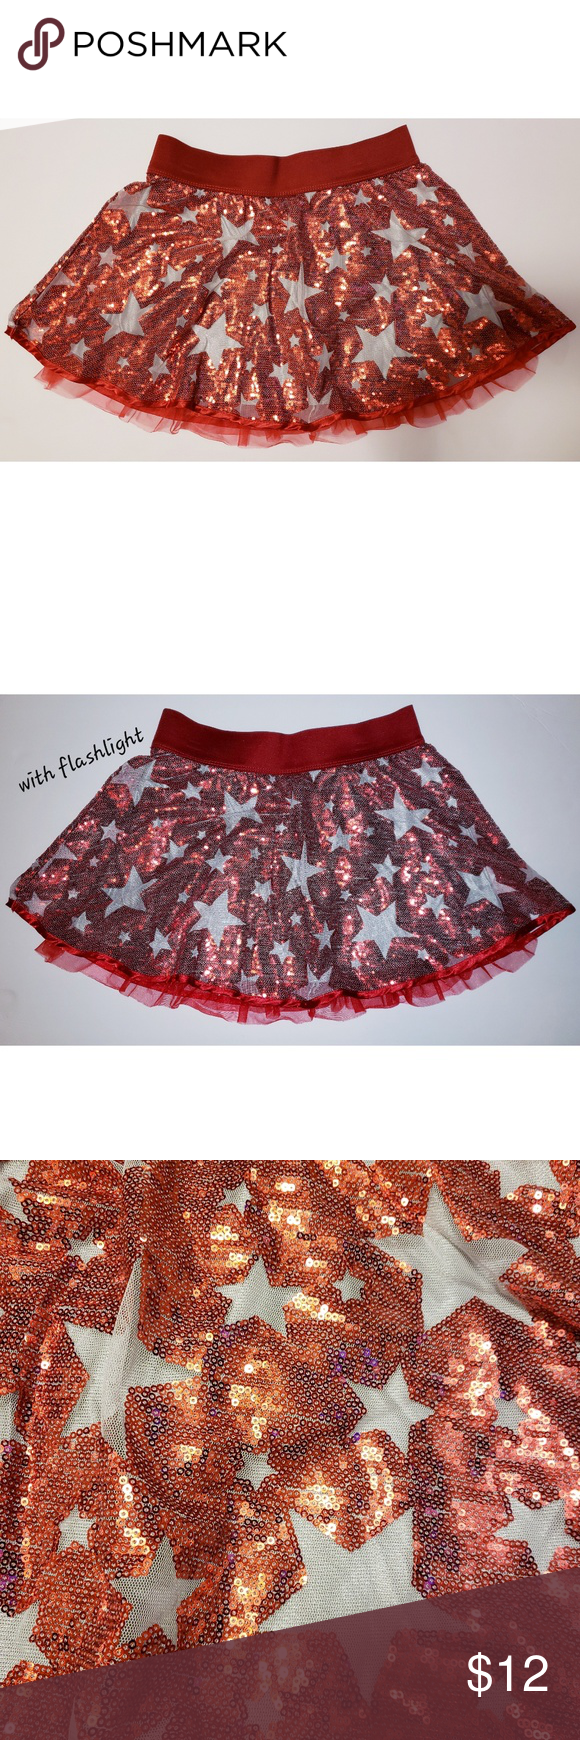 f9dacb17b Beautiful red sequin skirt with stars Girls beautiful red sequin skirt with  silver stars. Very sparkly! Brand new without tags never worn.